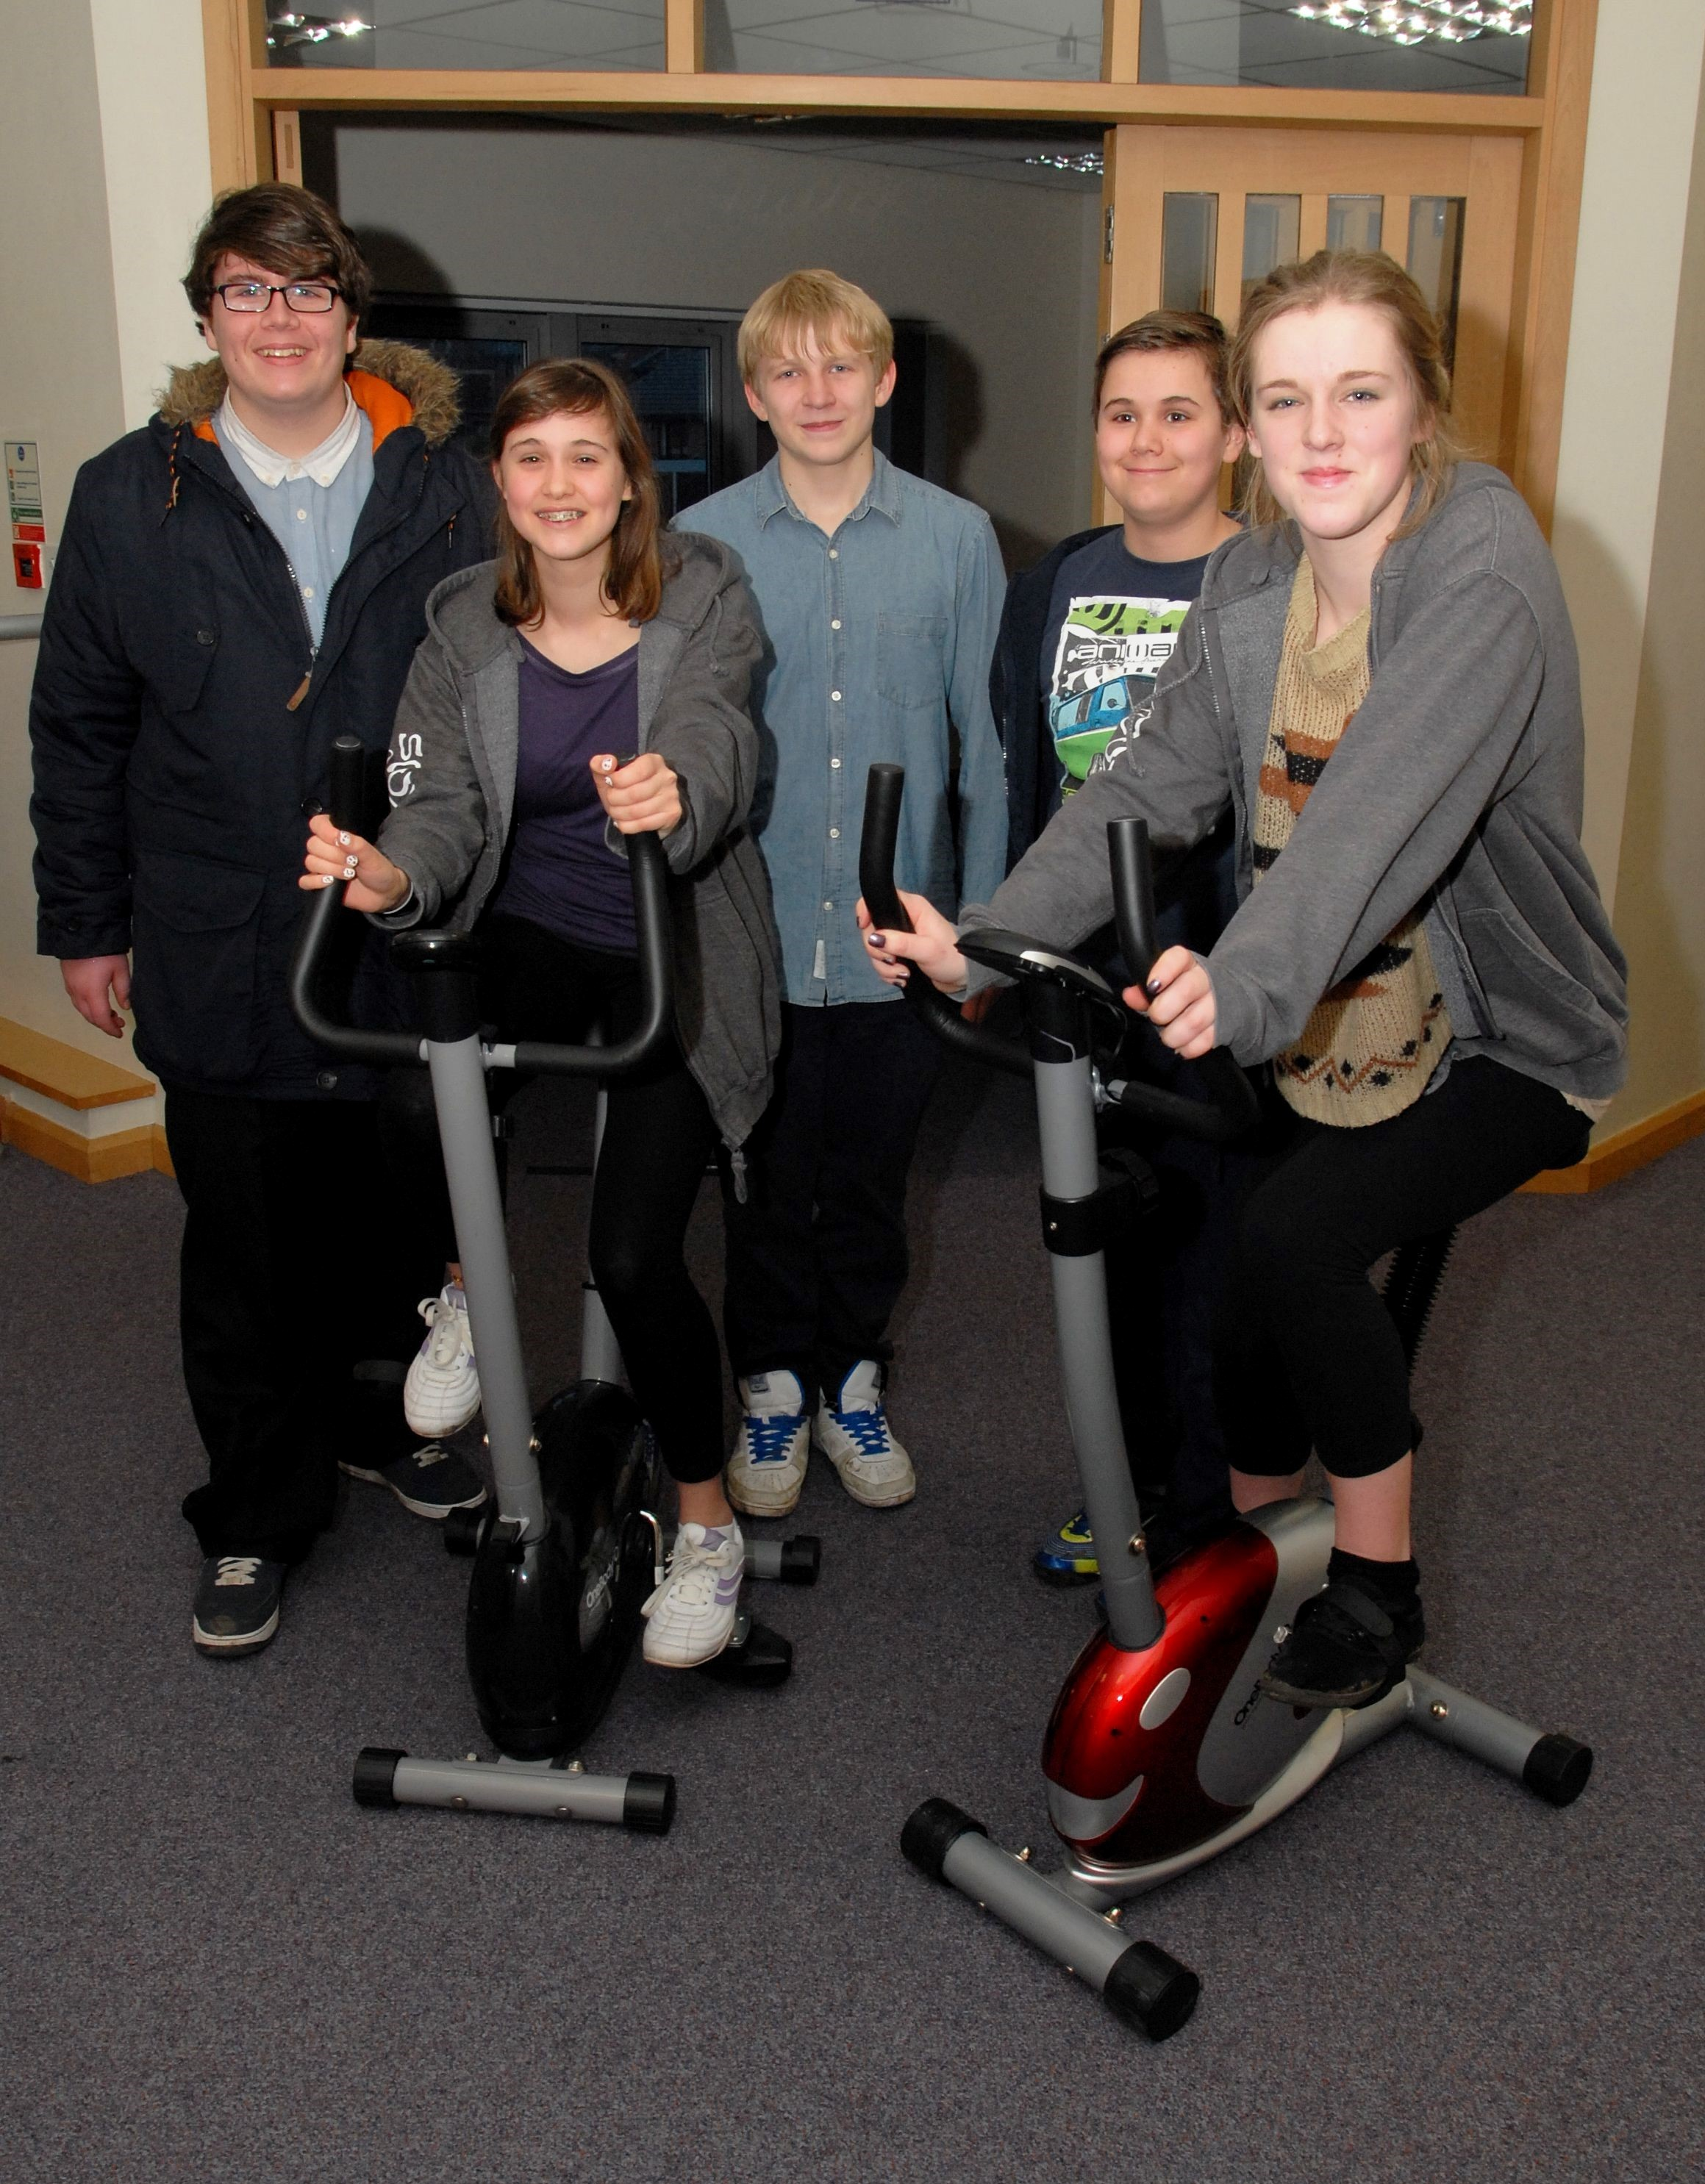 0814525601 Paul Jackson 19.02.14 Worcester A team of young people are cycling the equivelent of 6000 miles on exercise bikes to fund a trip to volunteer at an orphanage in Thailand. From left - Lewis Edwards, 17, Ellie Cave, 15, Dan Plumtree,